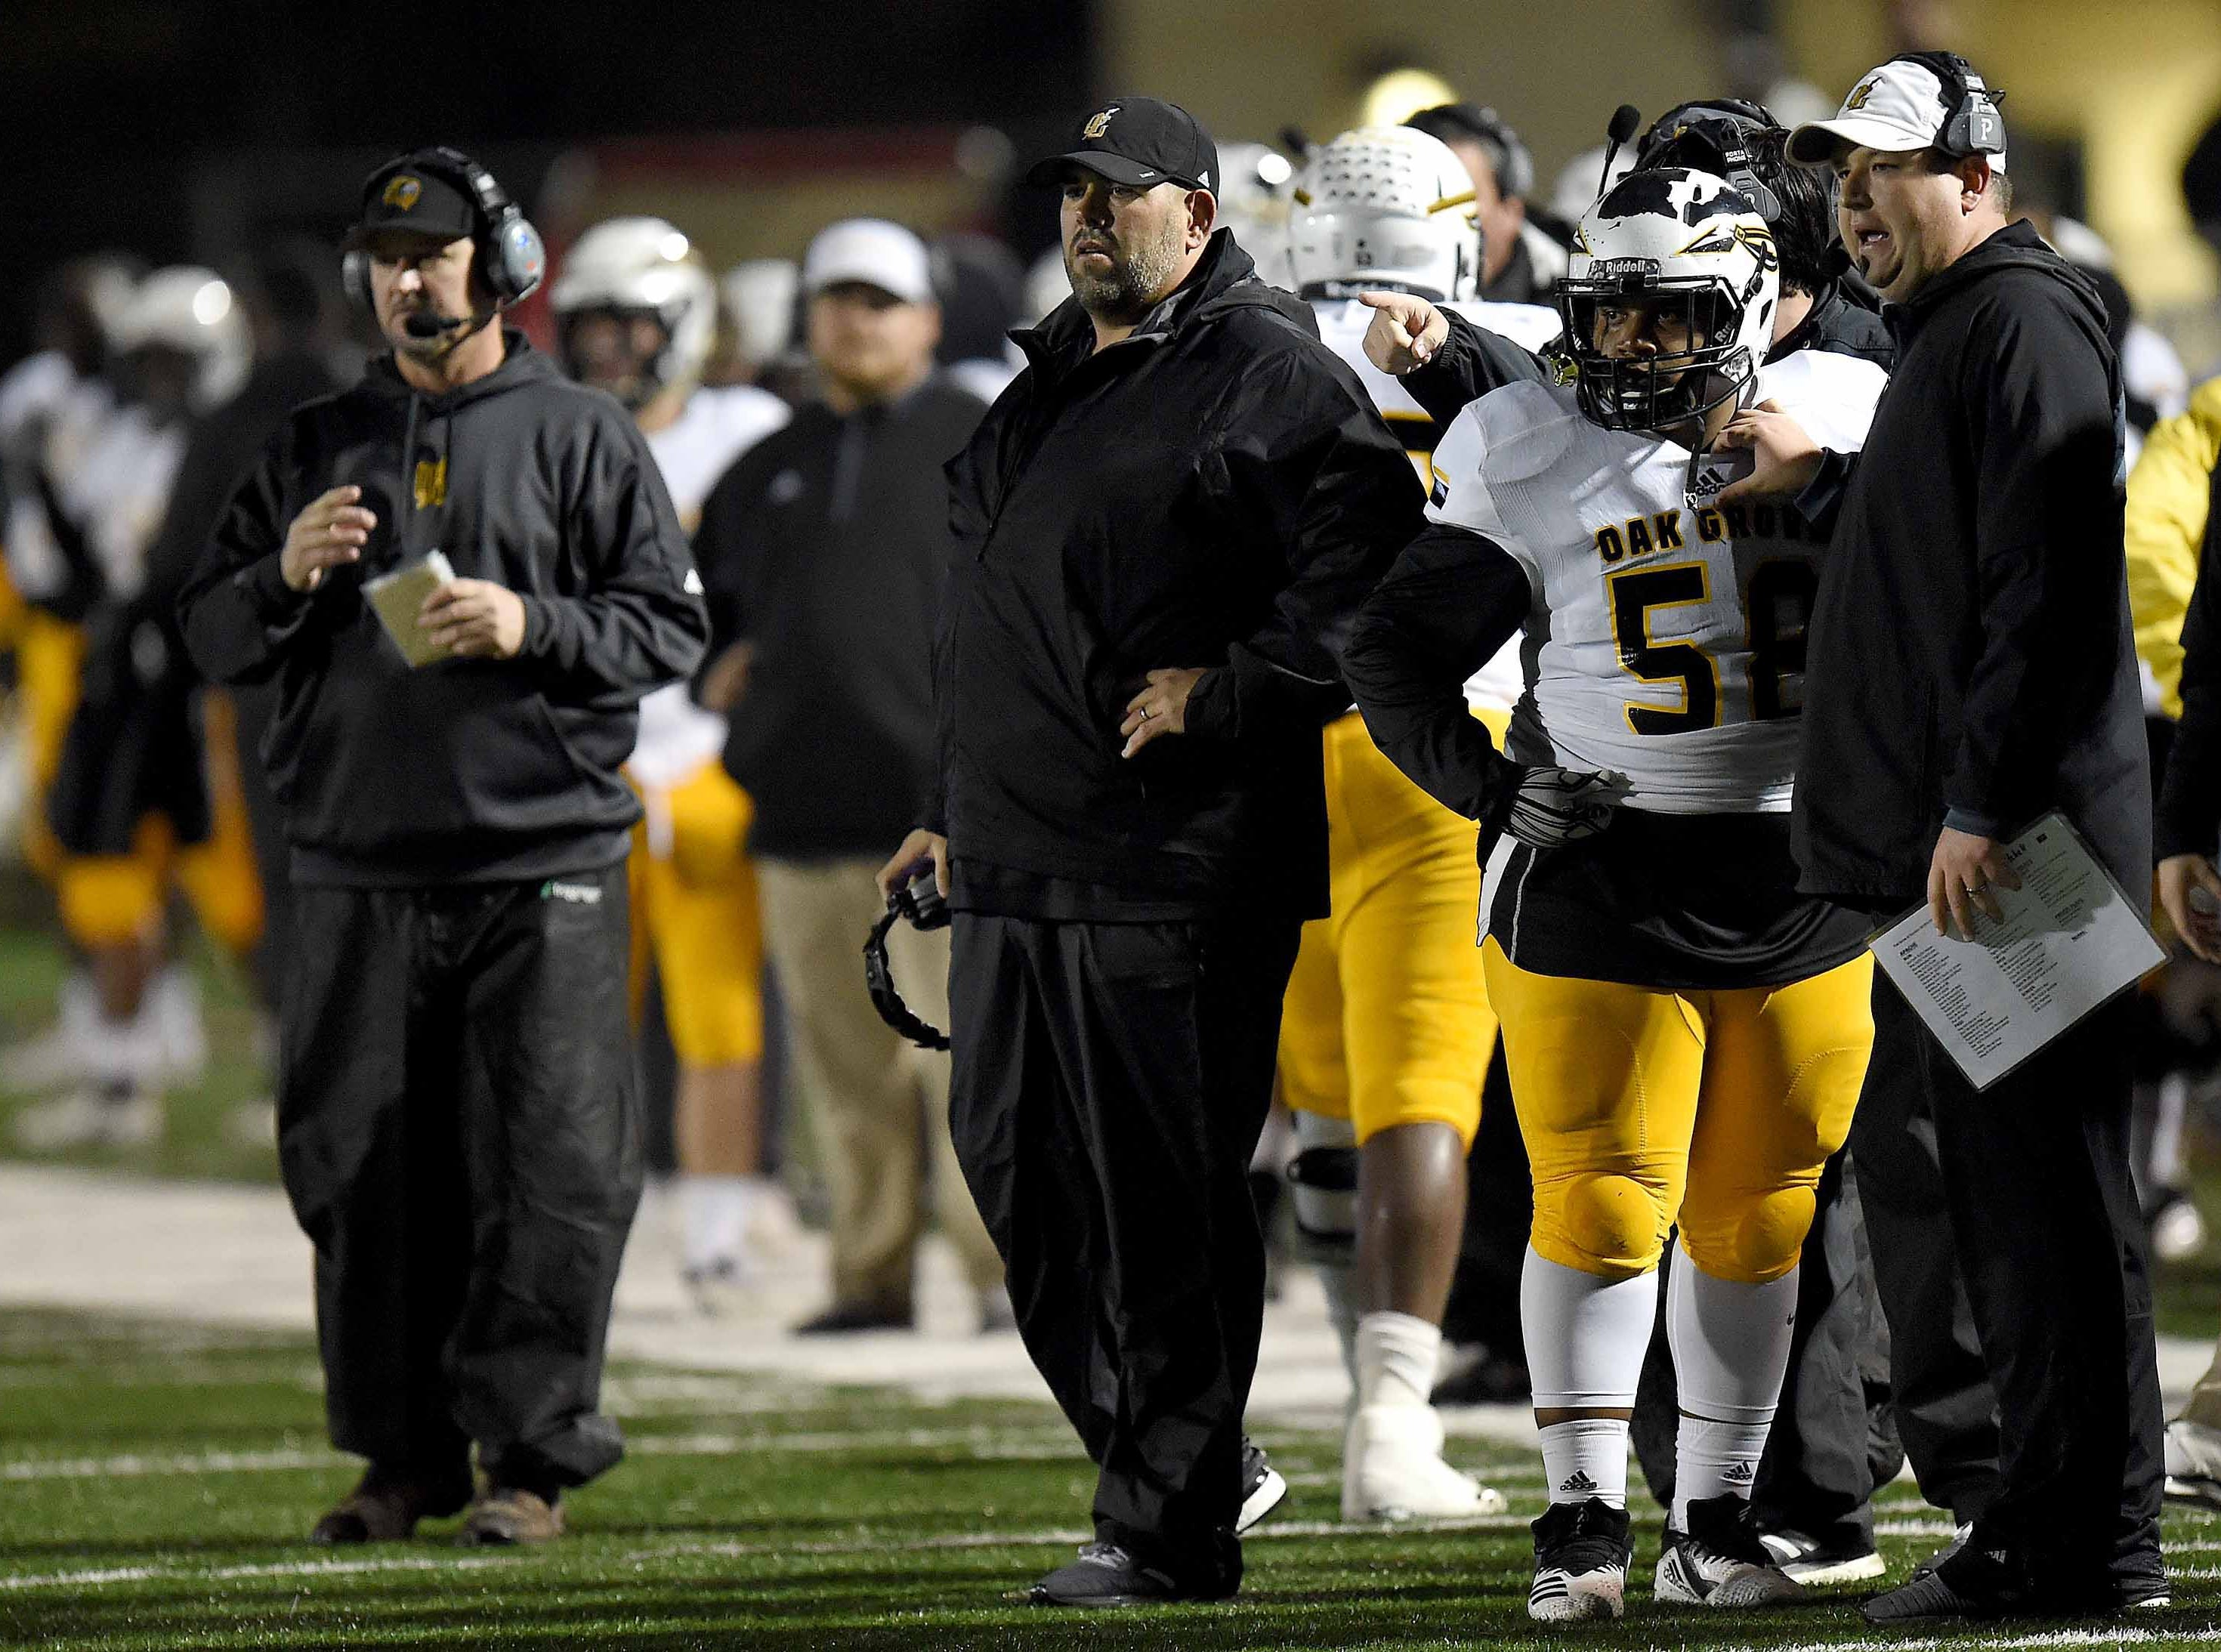 Oak Grove head coach Drew Causey (center) and his staff watch an extra point in the MHSAA Class 6A South State Championship on Friday, November 23, 2018, at Brandon High School in Brandon, Miss.